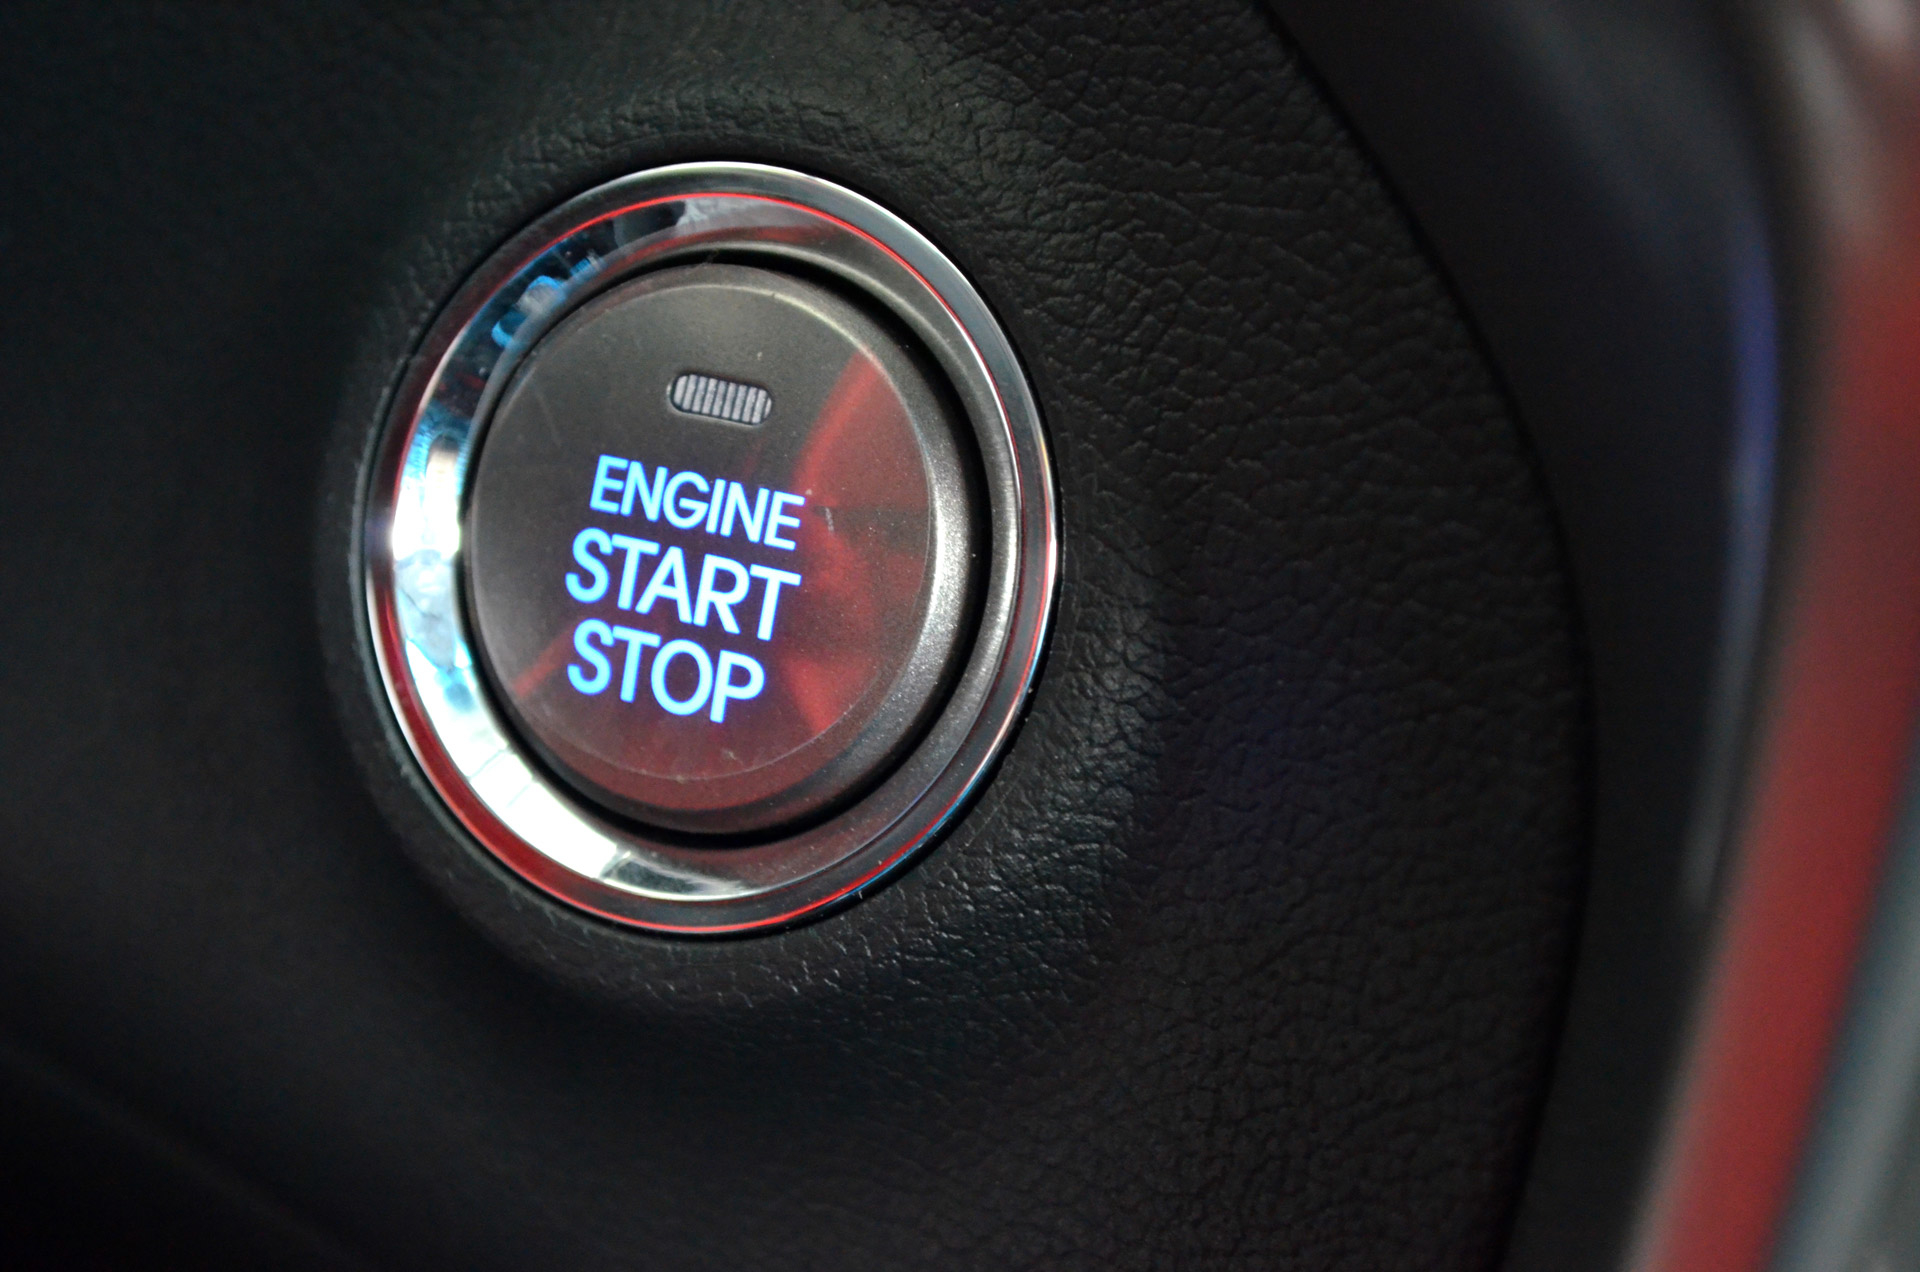 Car Repairs: Why Has Your Engine Warning Light Come On